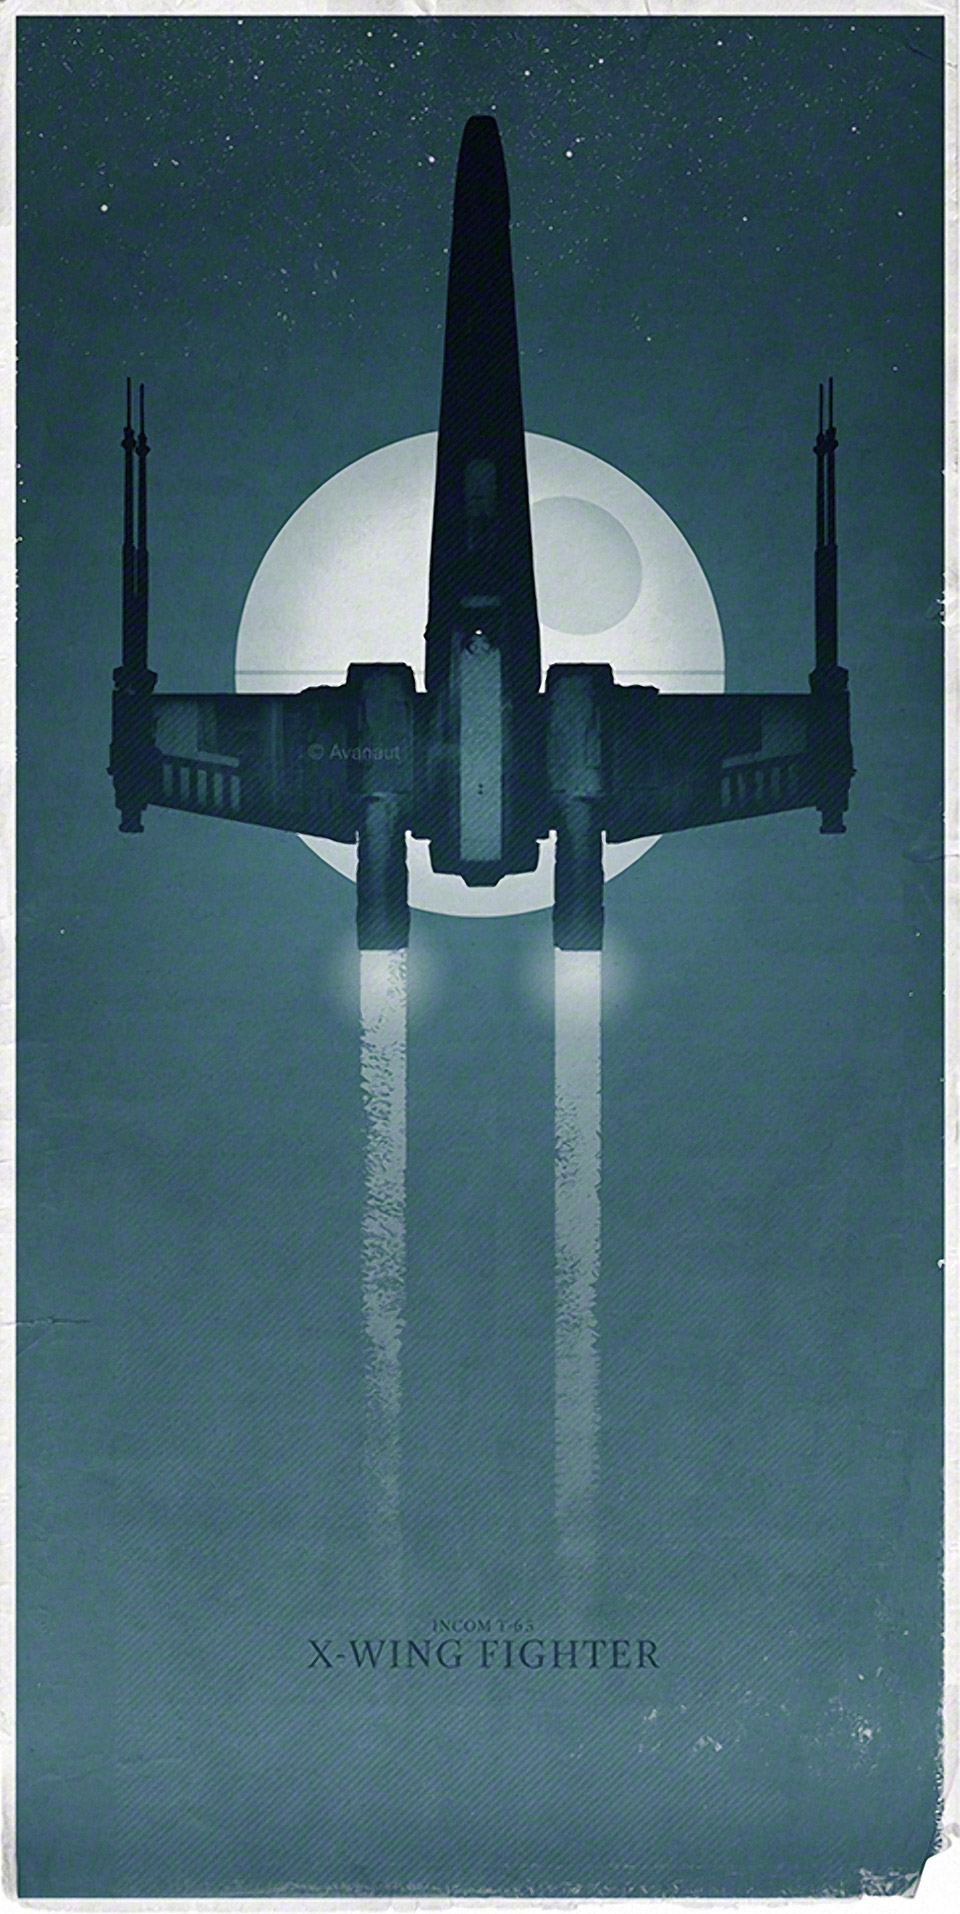 Star Wars Spaceship Art Images